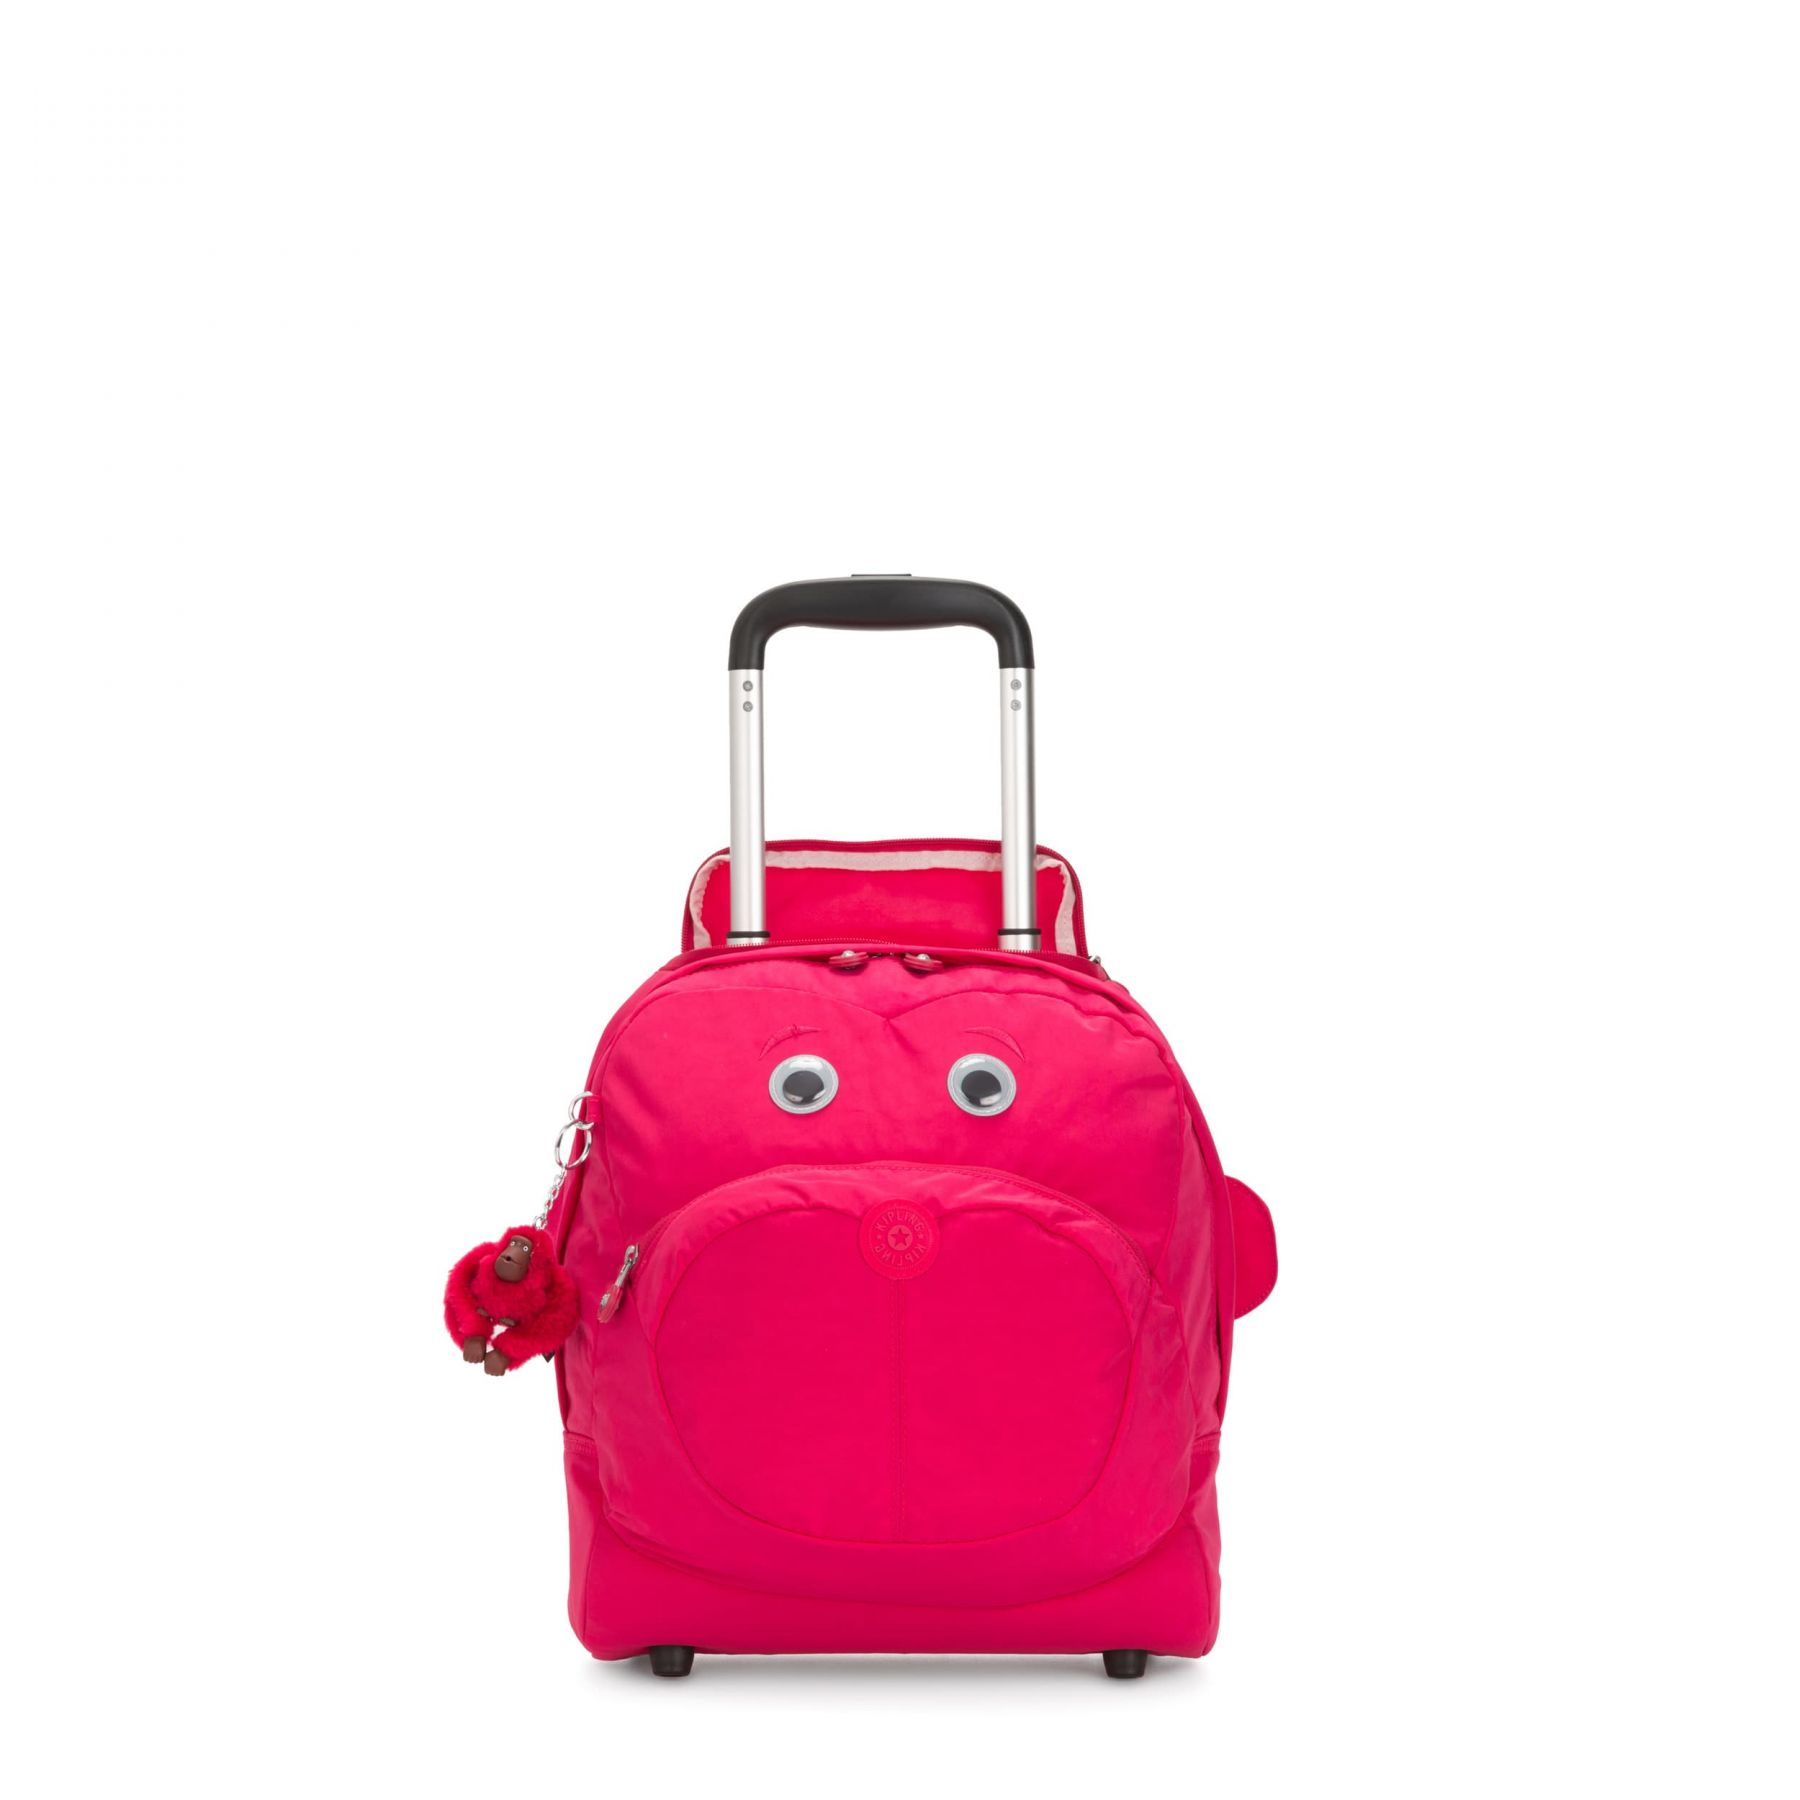 NUSI Latest Luggage by Kipling - Front view